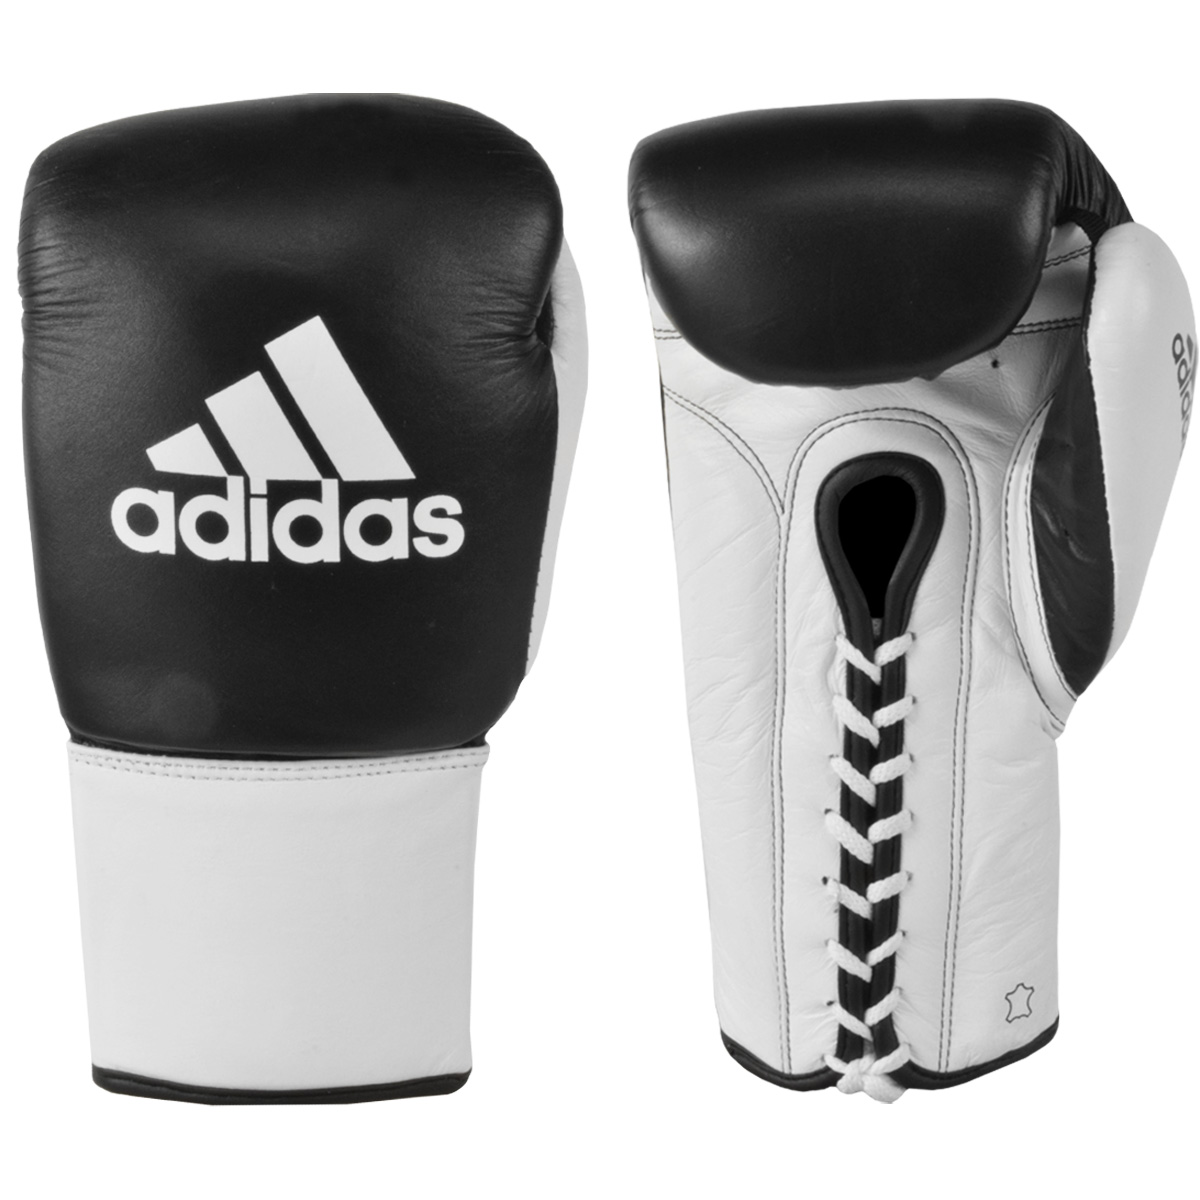 adidas boxing gloves adidas-glory-professional-lace-up-leather-boxing-gloves QOPWEKQ